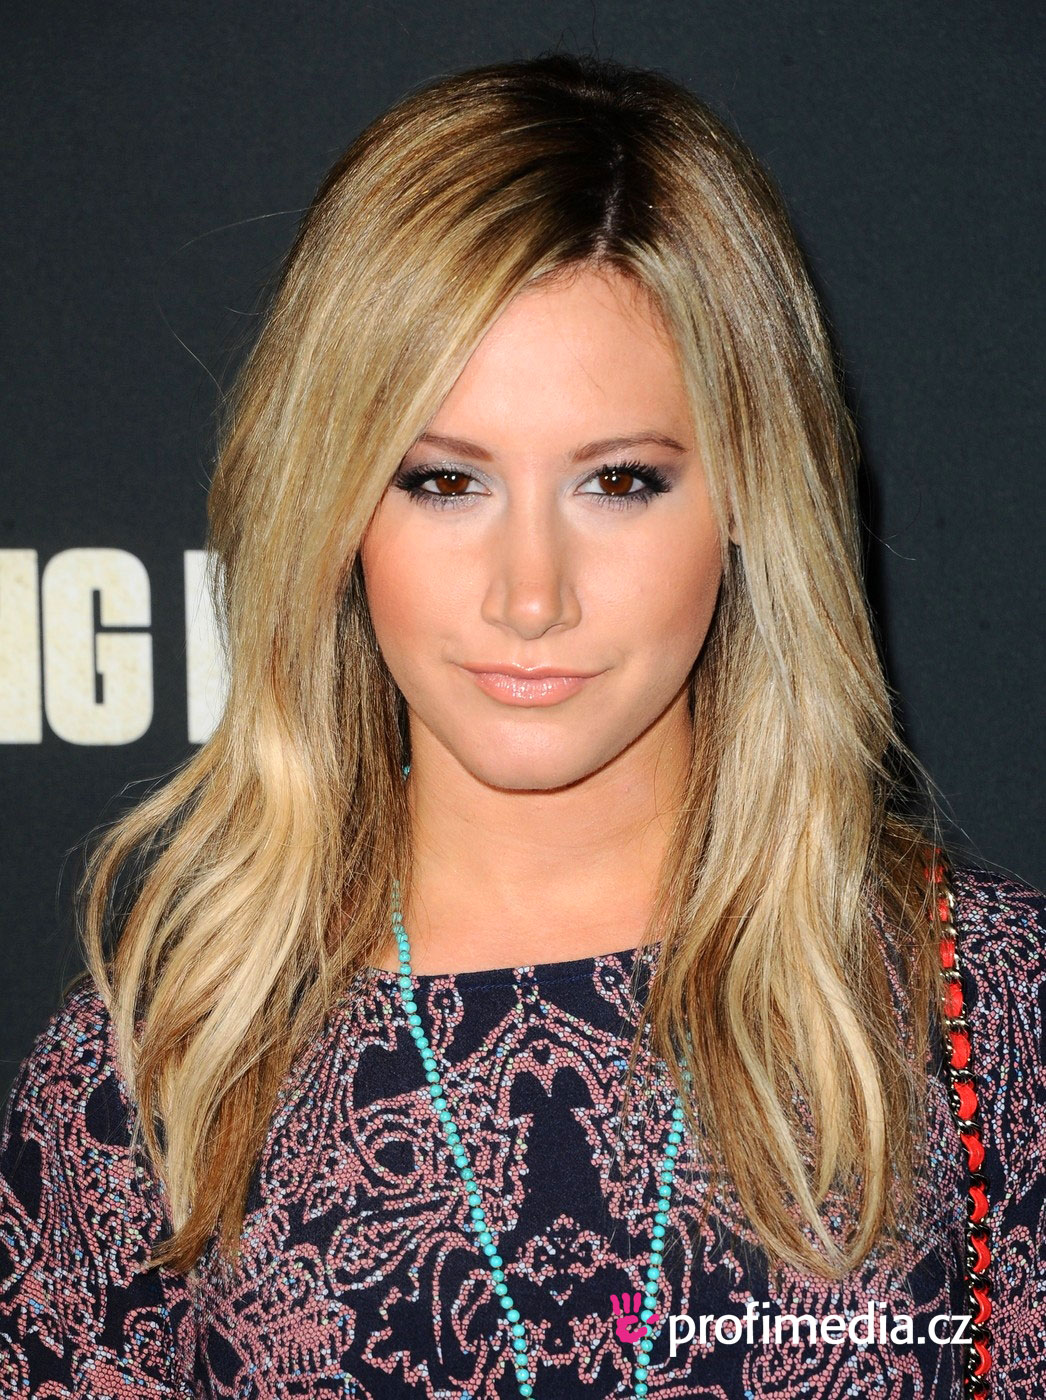 ashley tisdale 2016ashley tisdale 2016, ashley tisdale vk, ashley tisdale gallery, ashley tisdale be good to me, ashley tisdale 2017, ashley tisdale not like that, ashley tisdale crank it up, ashley tisdale кинопоиск, ashley tisdale husband, ashley tisdale official website, ashley tisdale tumblr, ashley tisdale песни, ashley tisdale net worth, ashley tisdale movies, ashley tisdale no princess, ashley tisdale how do you love someone lyrics, ashley tisdale interview, ashley tisdale ex's & oh's скачать, ashley tisdale so much for you, ashley tisdale sprouse twins